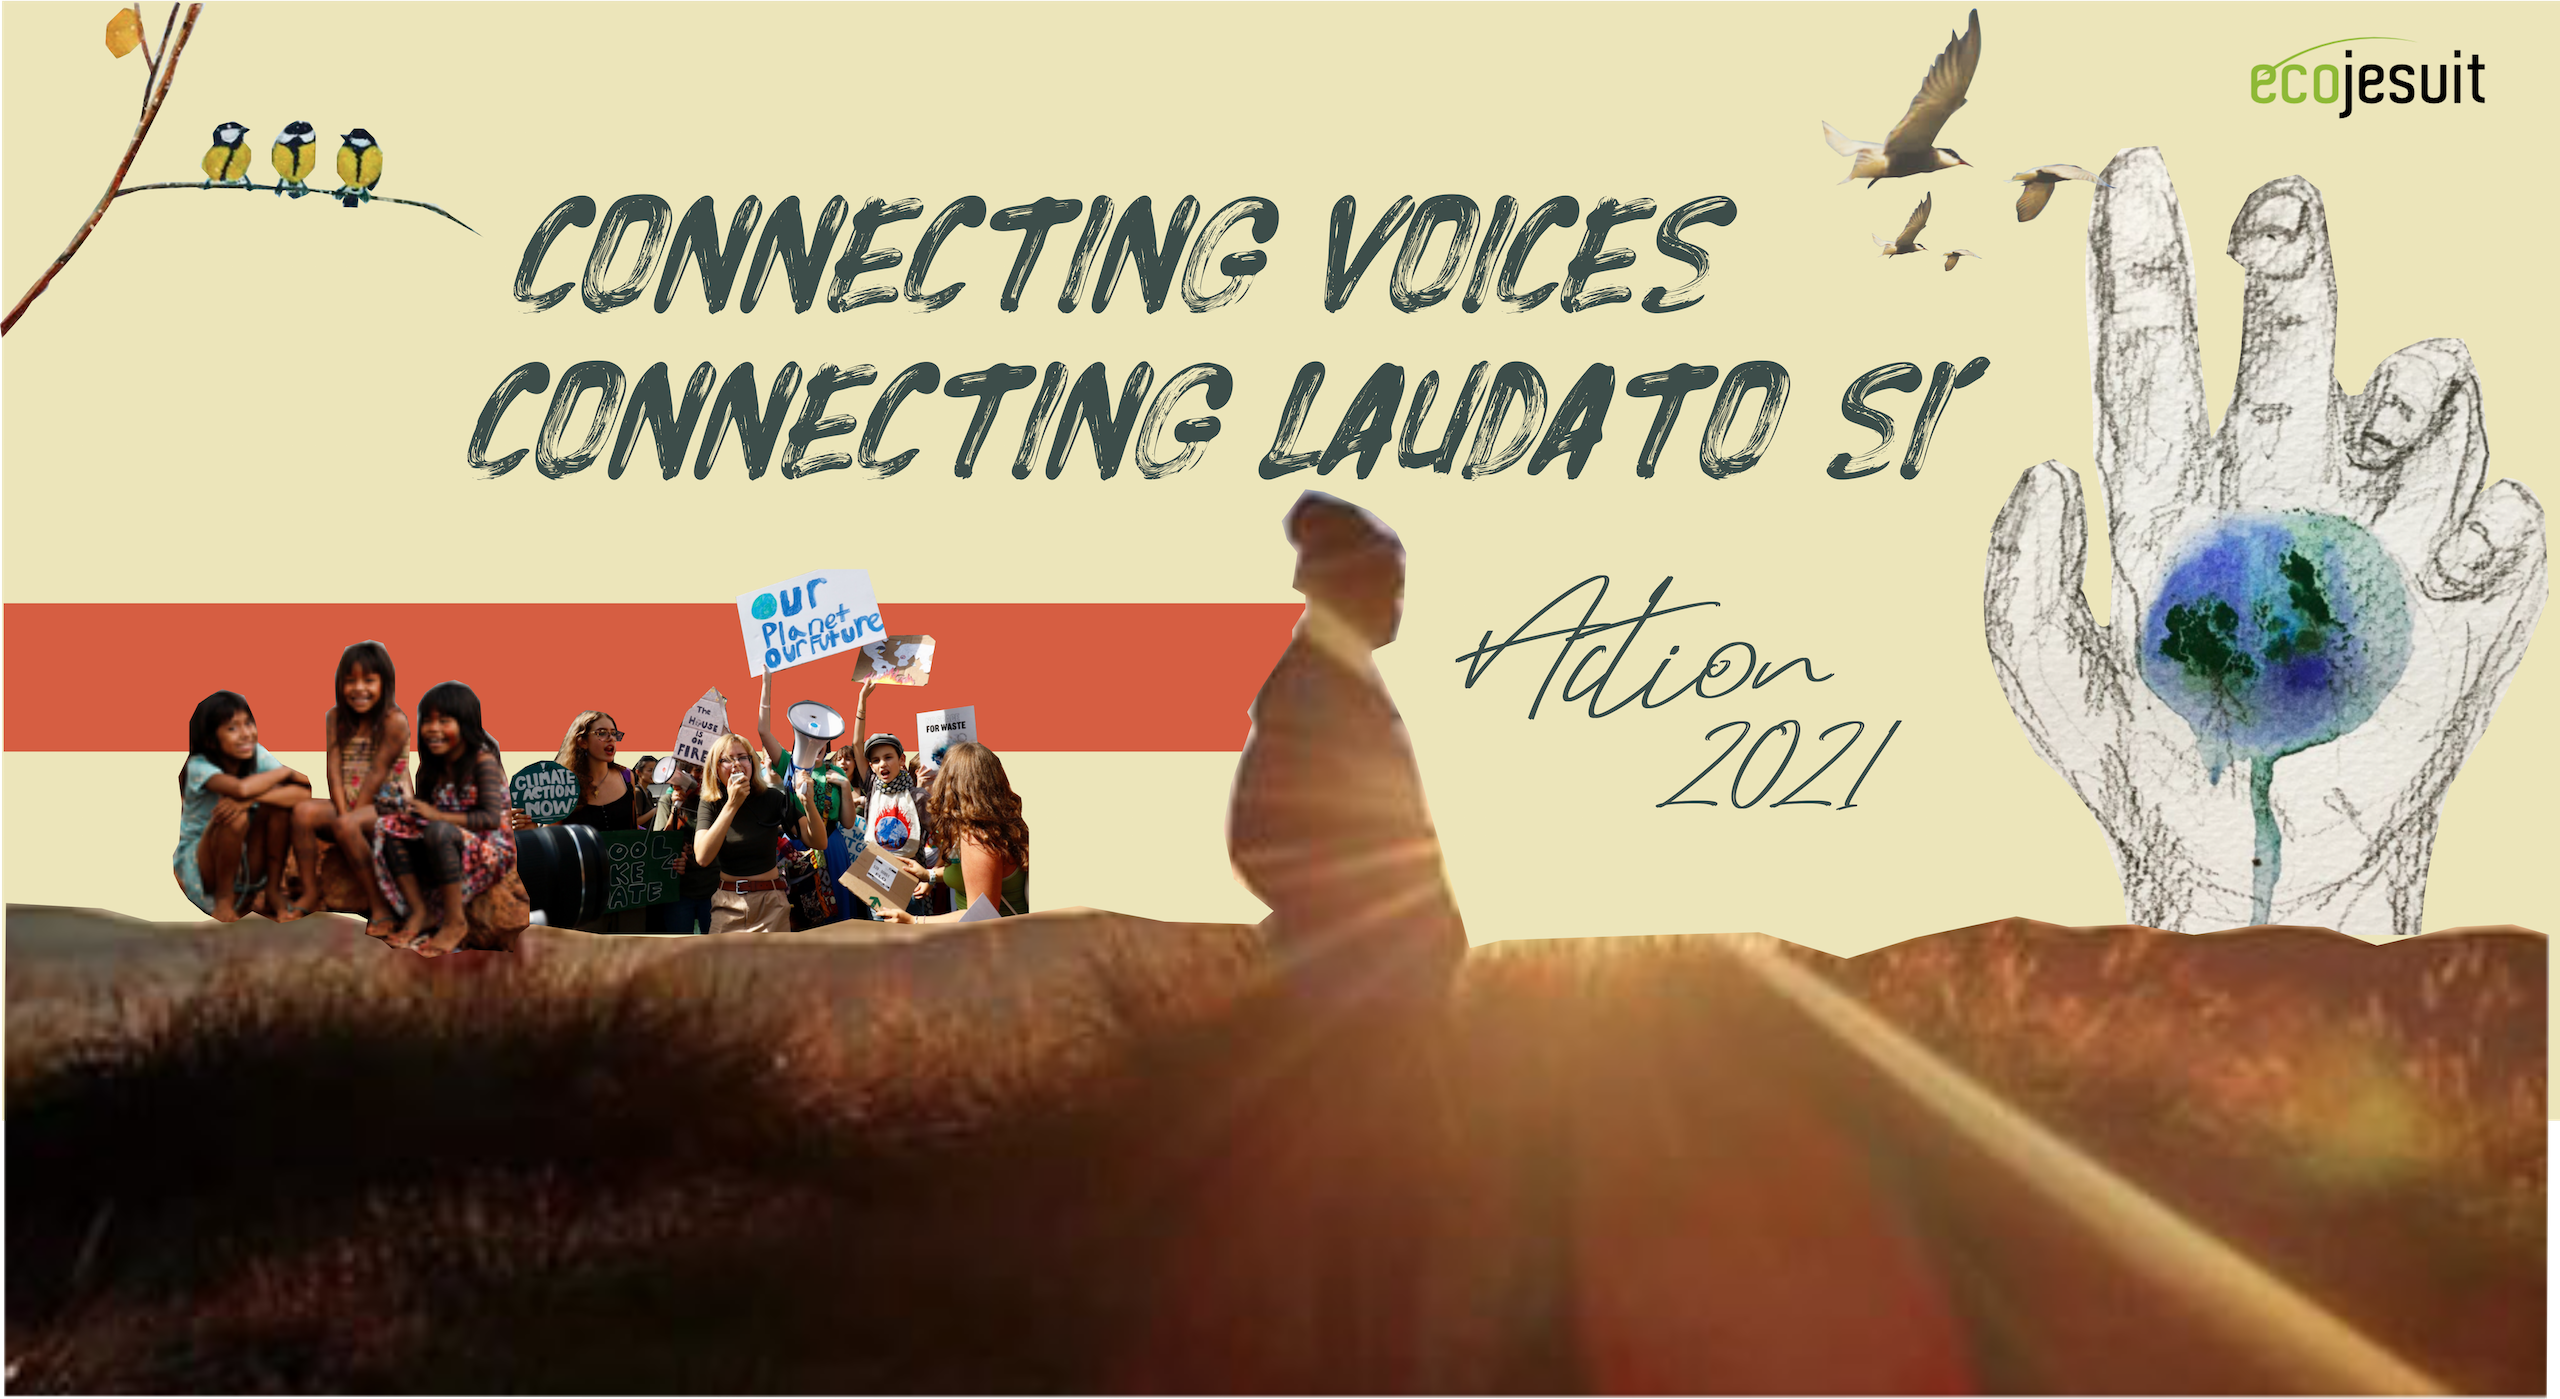 Connecting voices, connecting Laudato Si': Action 2021 (a video)